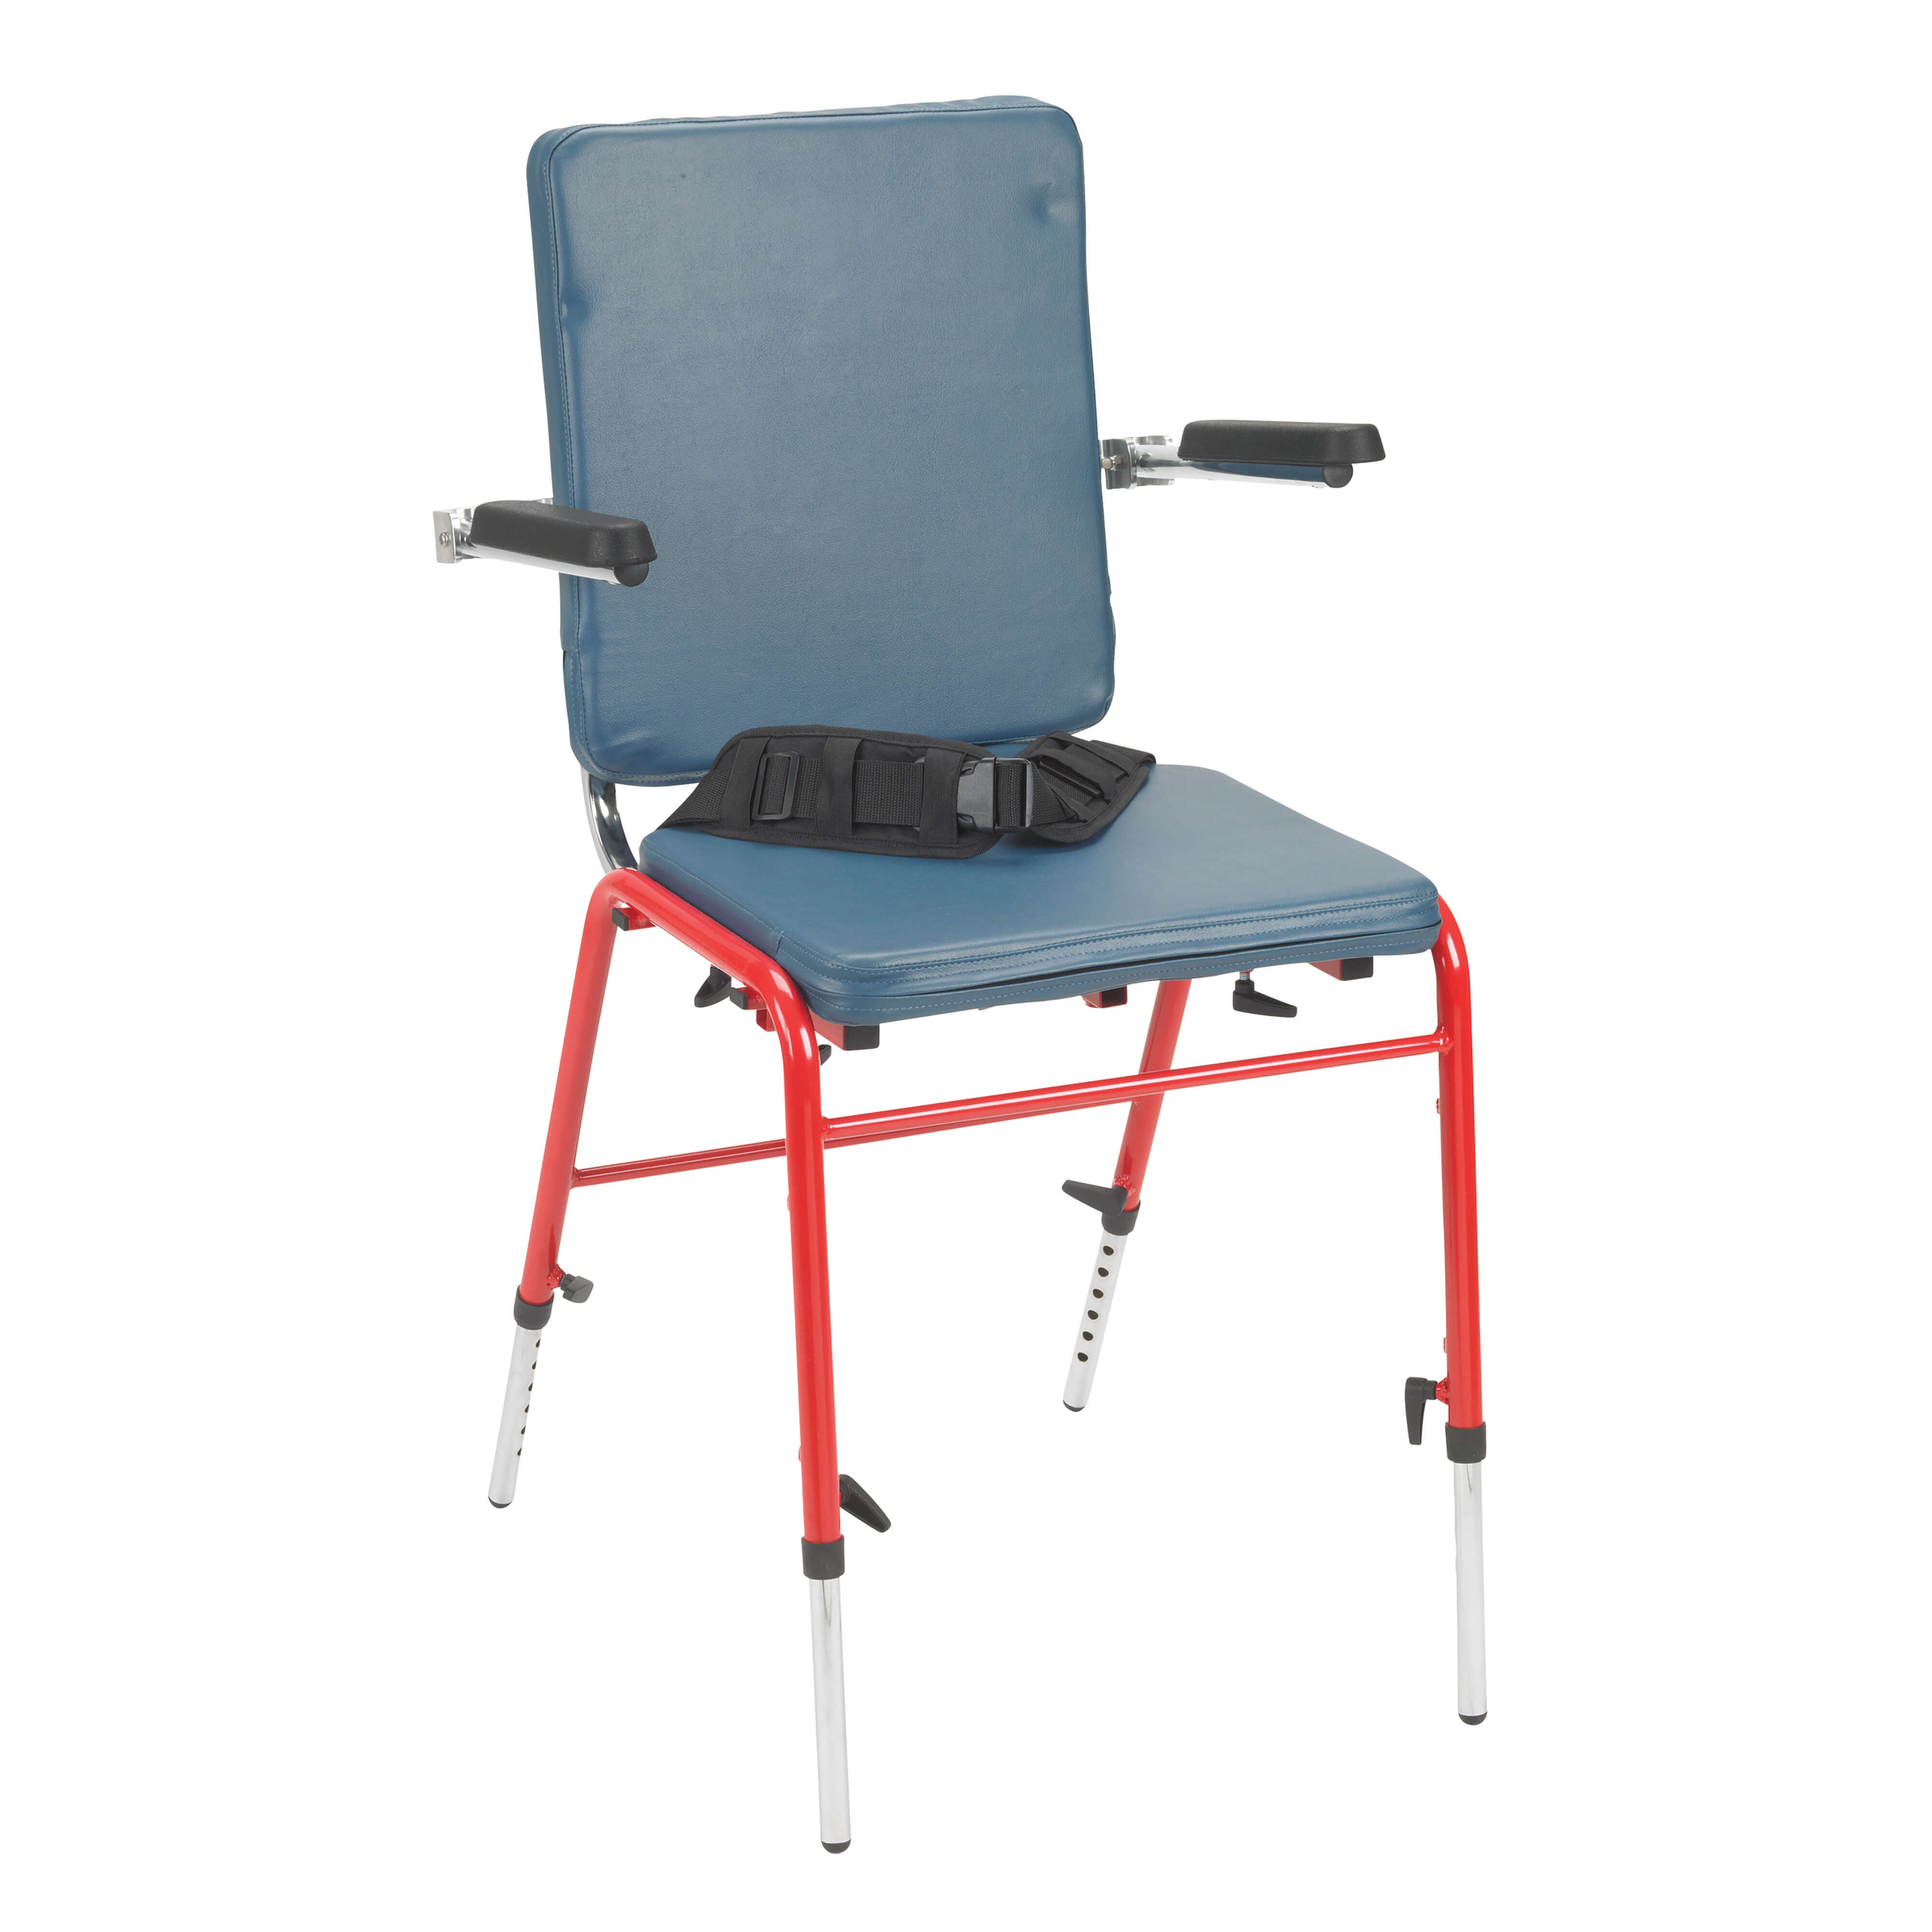 balt posture perfect chair covers for ikea nils first class school small baltimore maryland